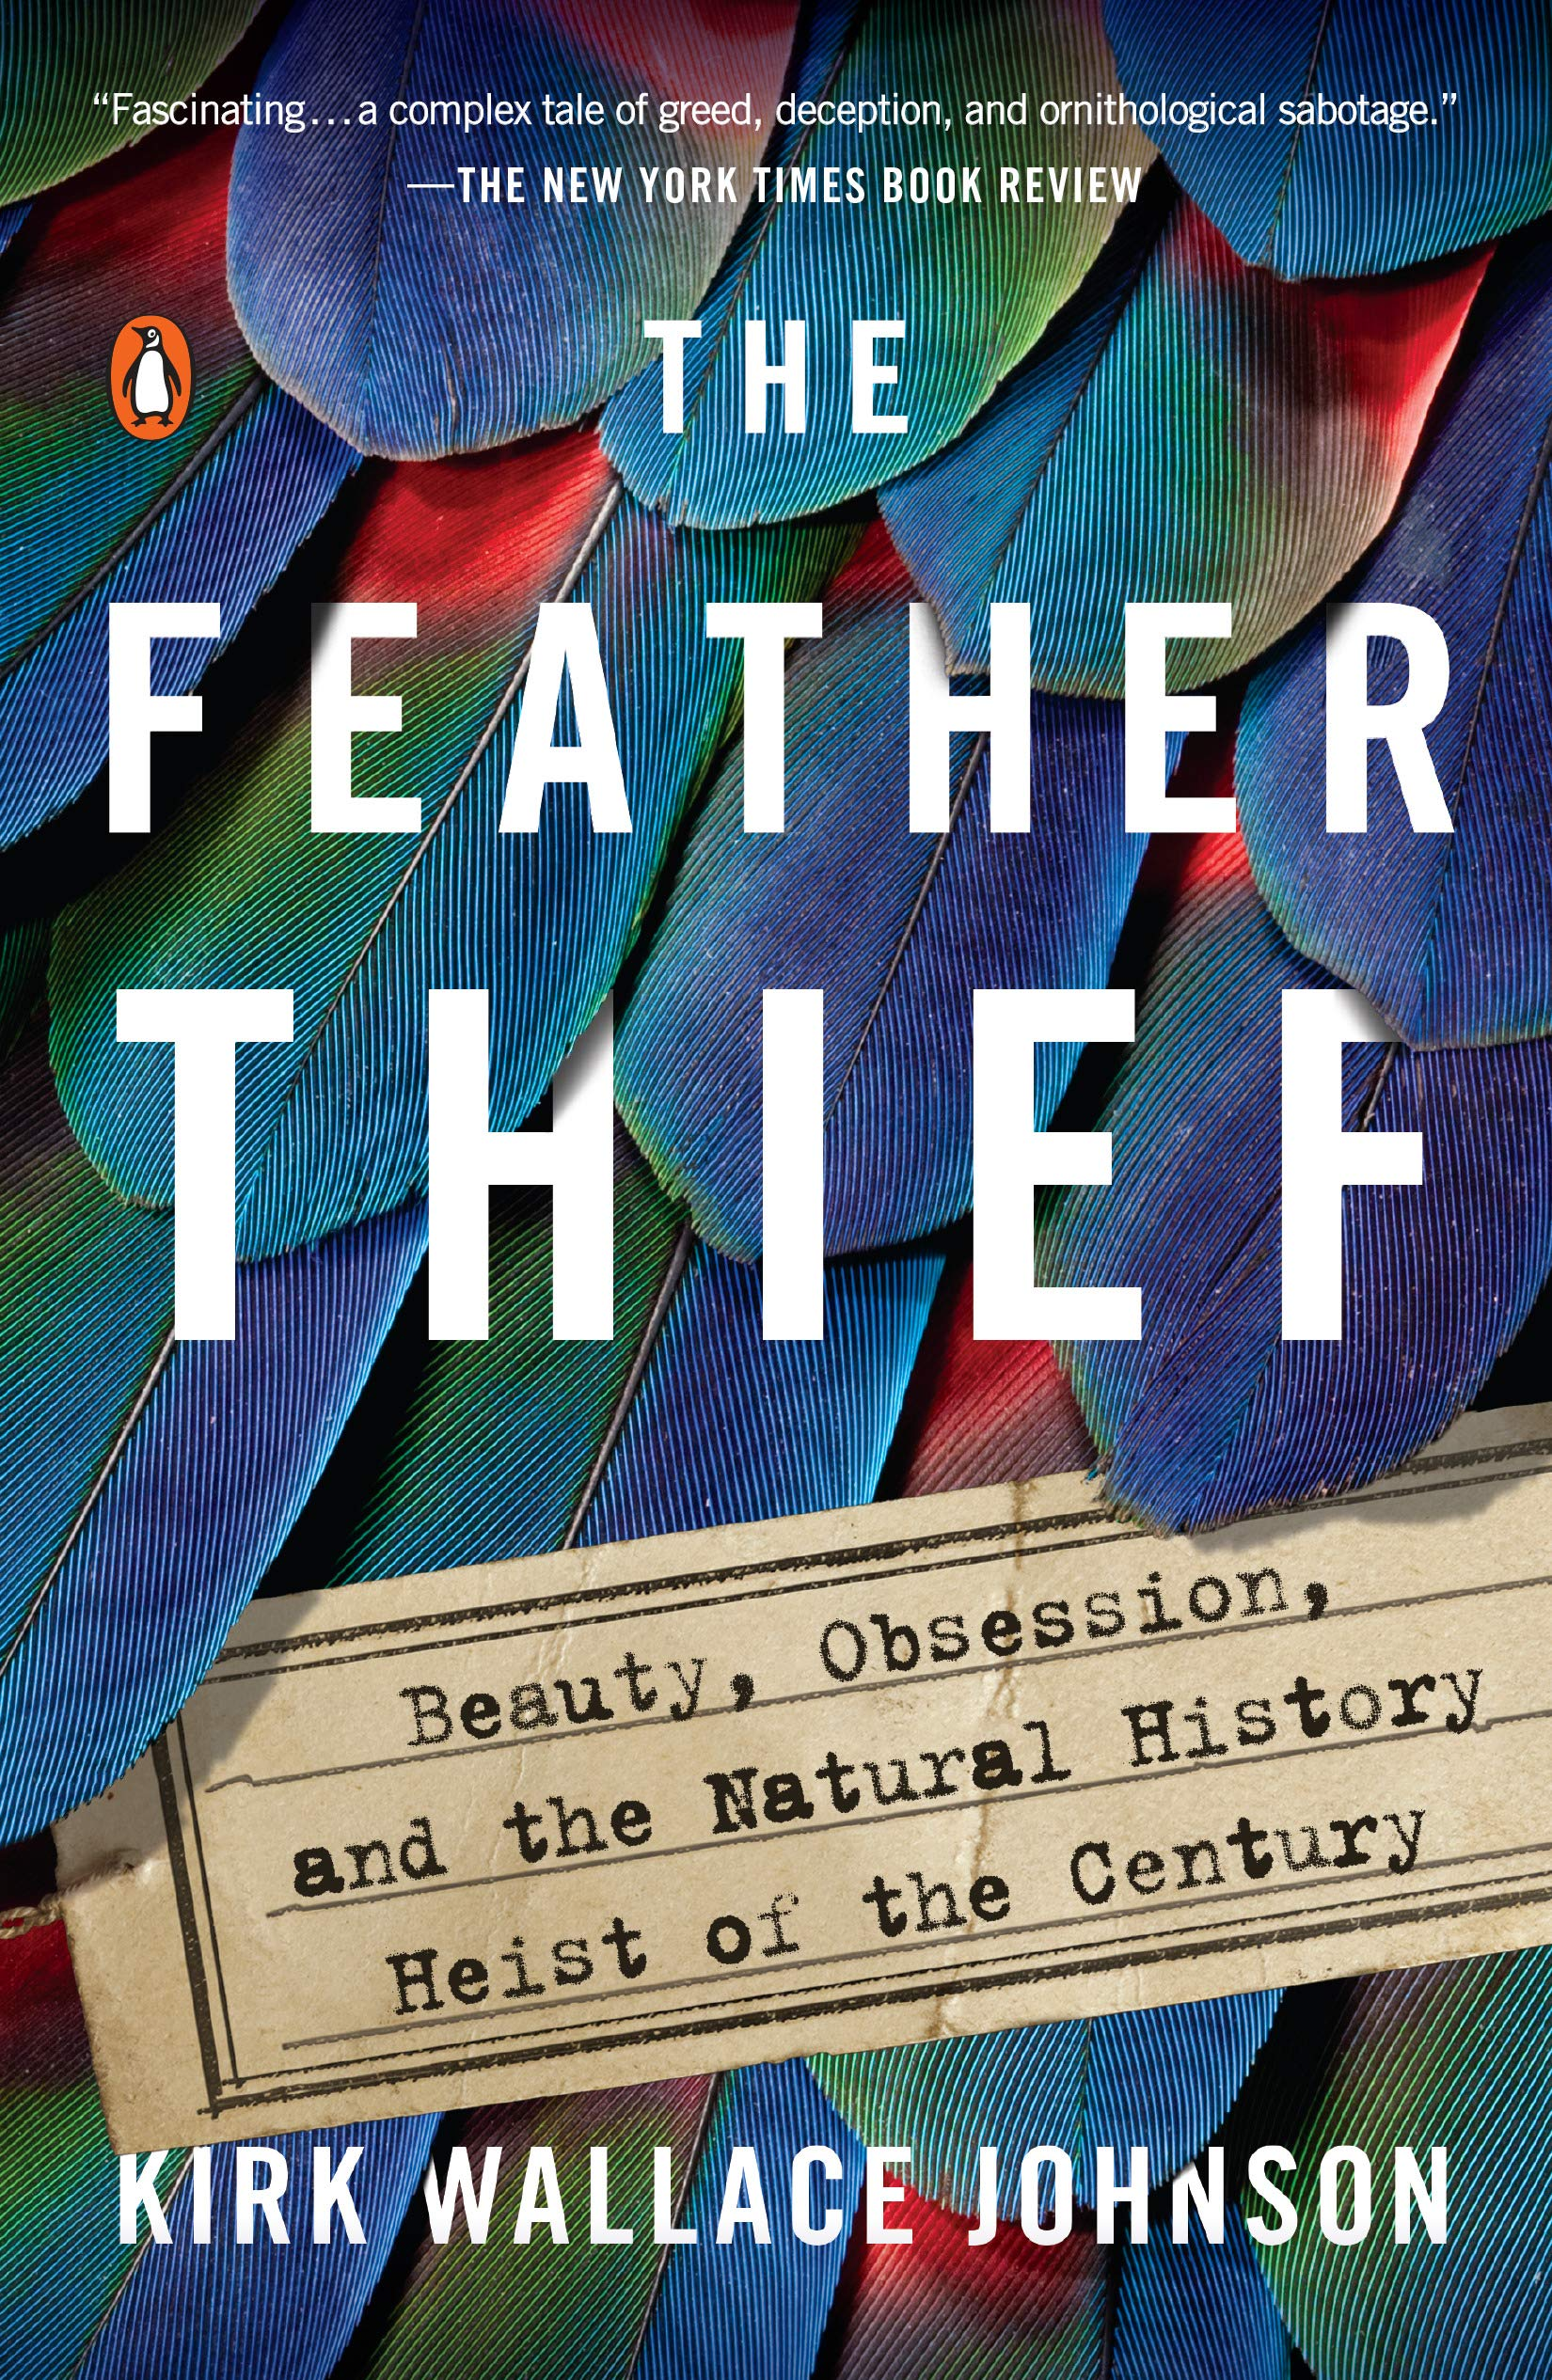 The Feather Thief: Beauty, Obsession, and the Natural History Heist of the Century by Penguin Books